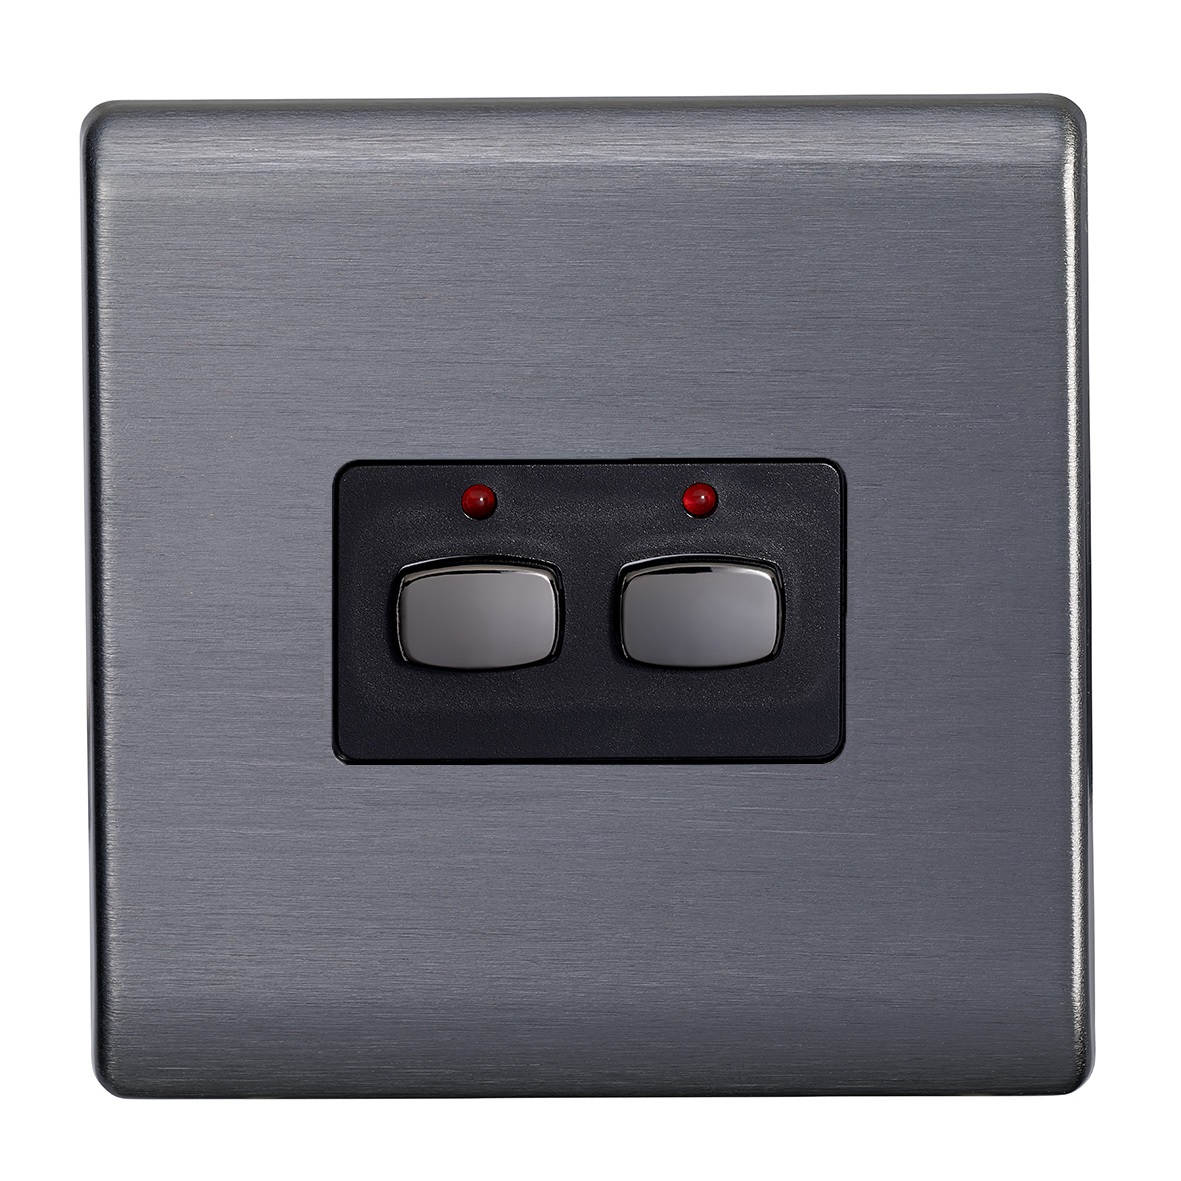 Smart 6mm master/slave two gang Light Switch Graphite